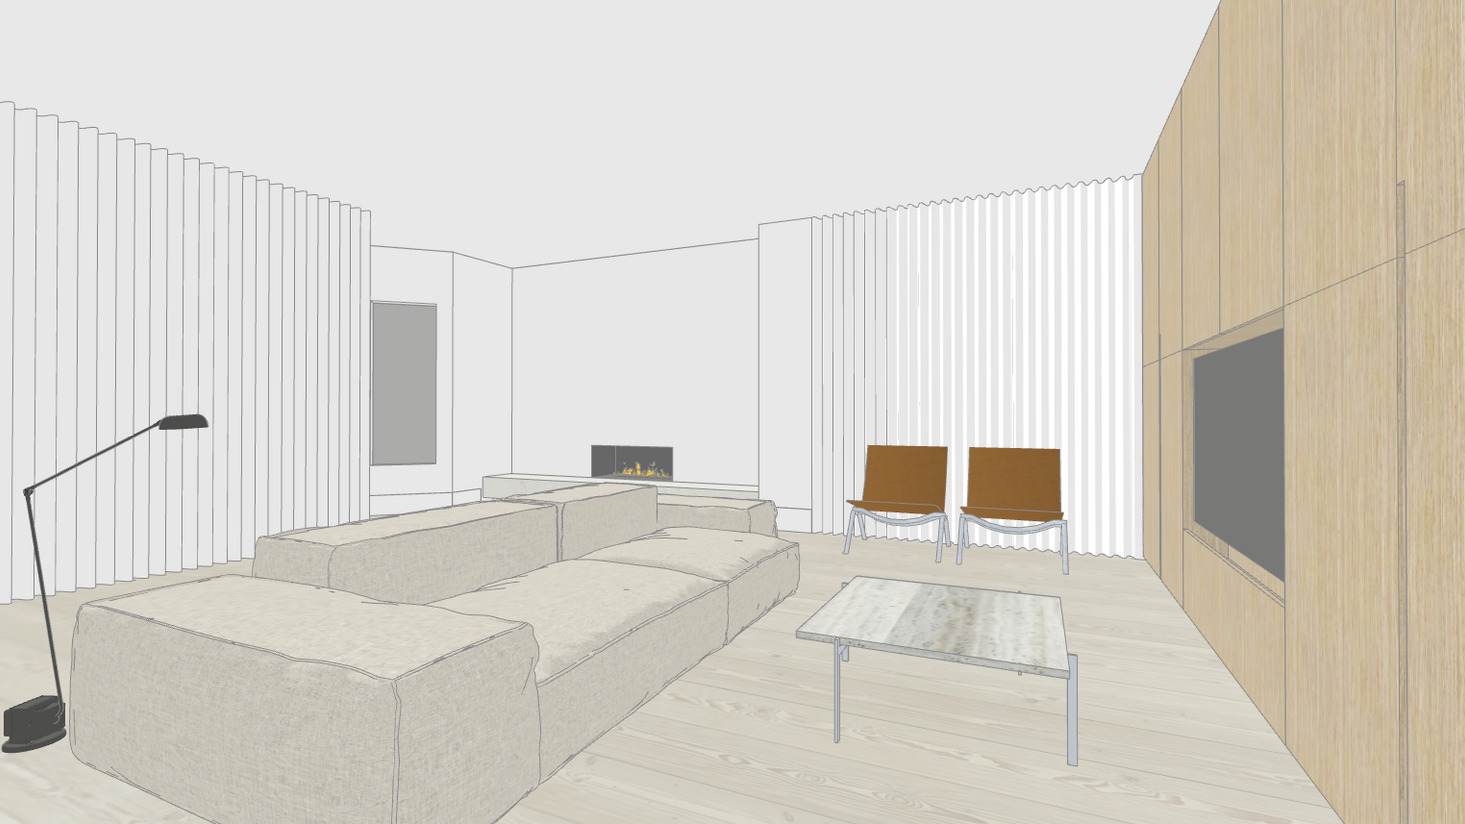 project render with fir floors and living divani by untitled design agency